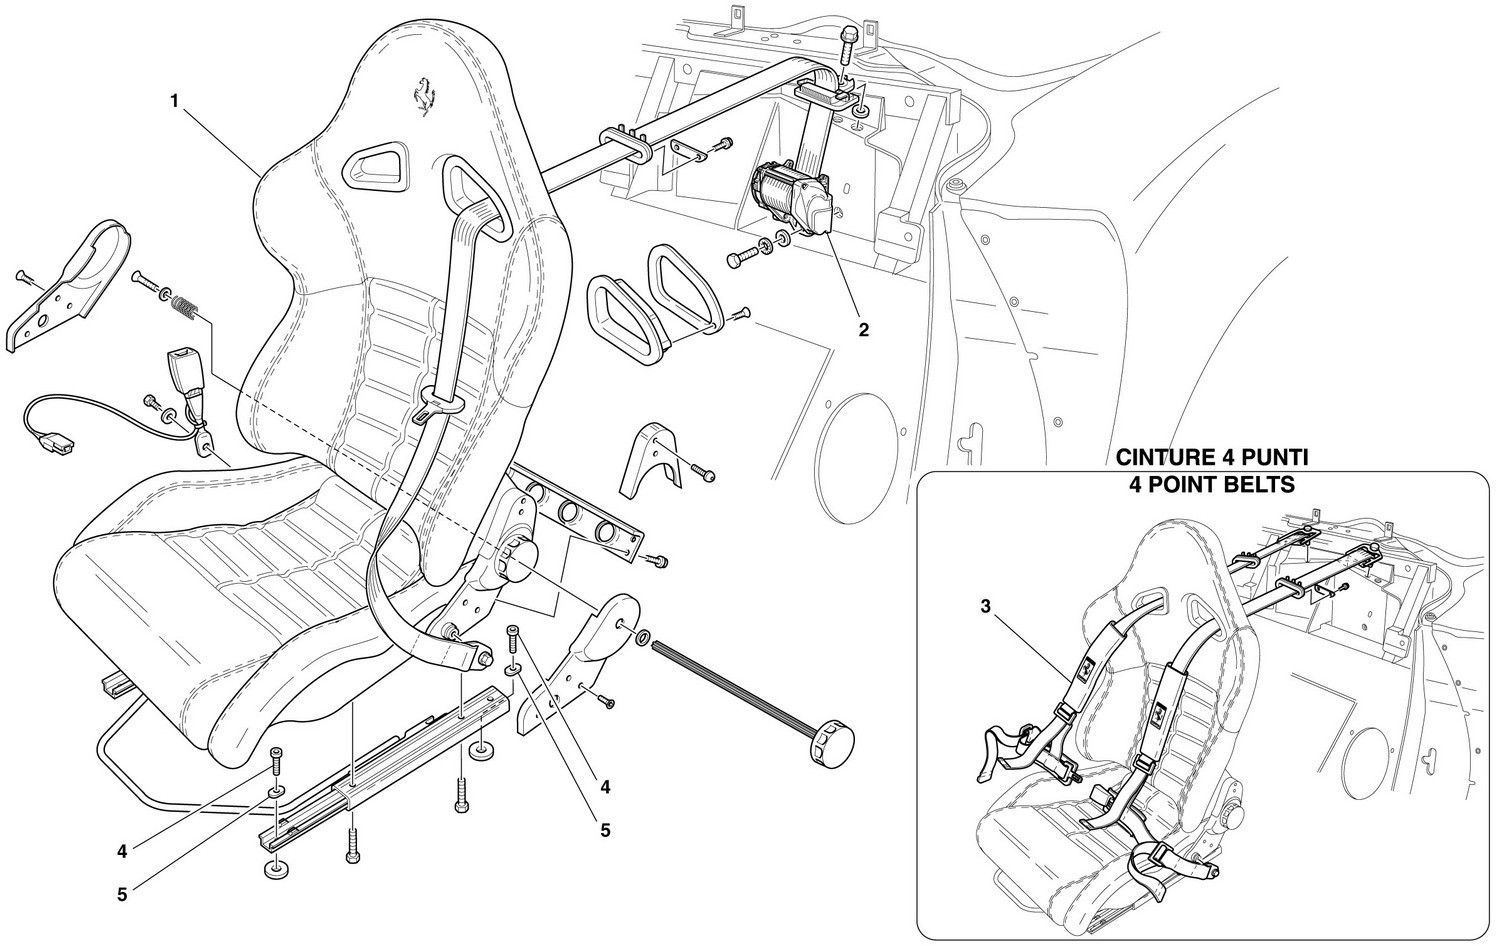 SEAT AND SAFETY BELTS